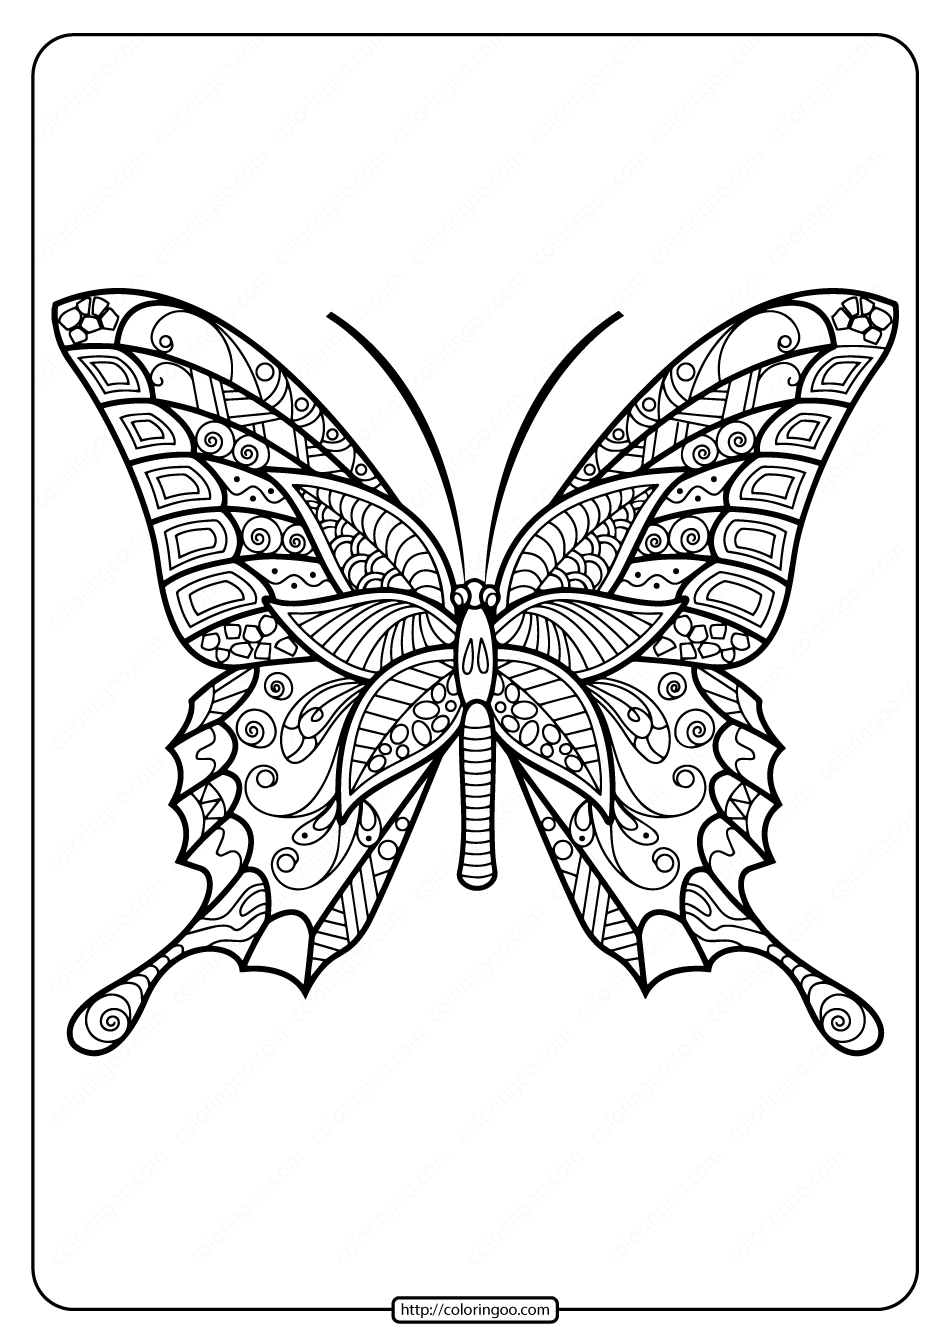 Printable Butterfly Mandala Pdf Coloring Pages 42 Insect Coloring Pages Butterfly Coloring Page Butterfly Printable